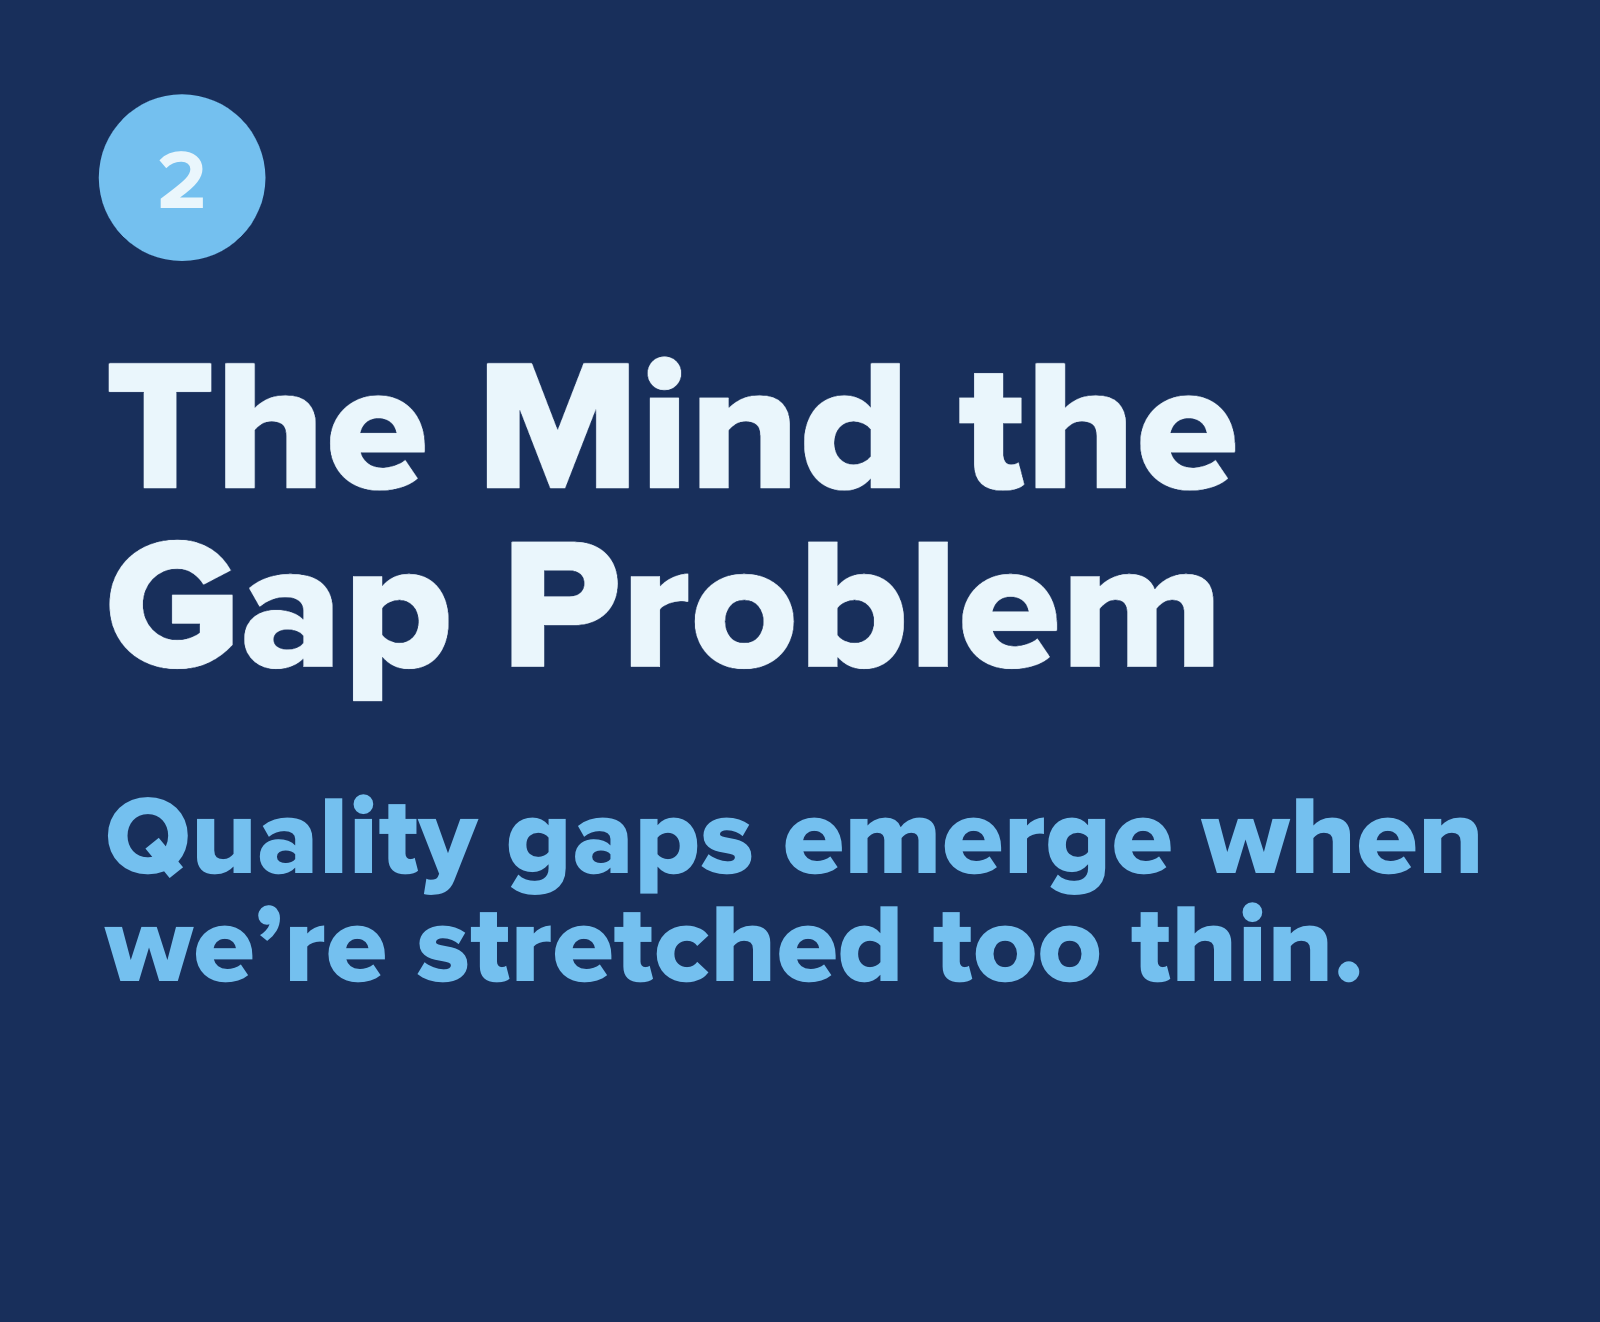 The Mind the Gap Problem—Quality gaps emerge when we're stretched too thin.